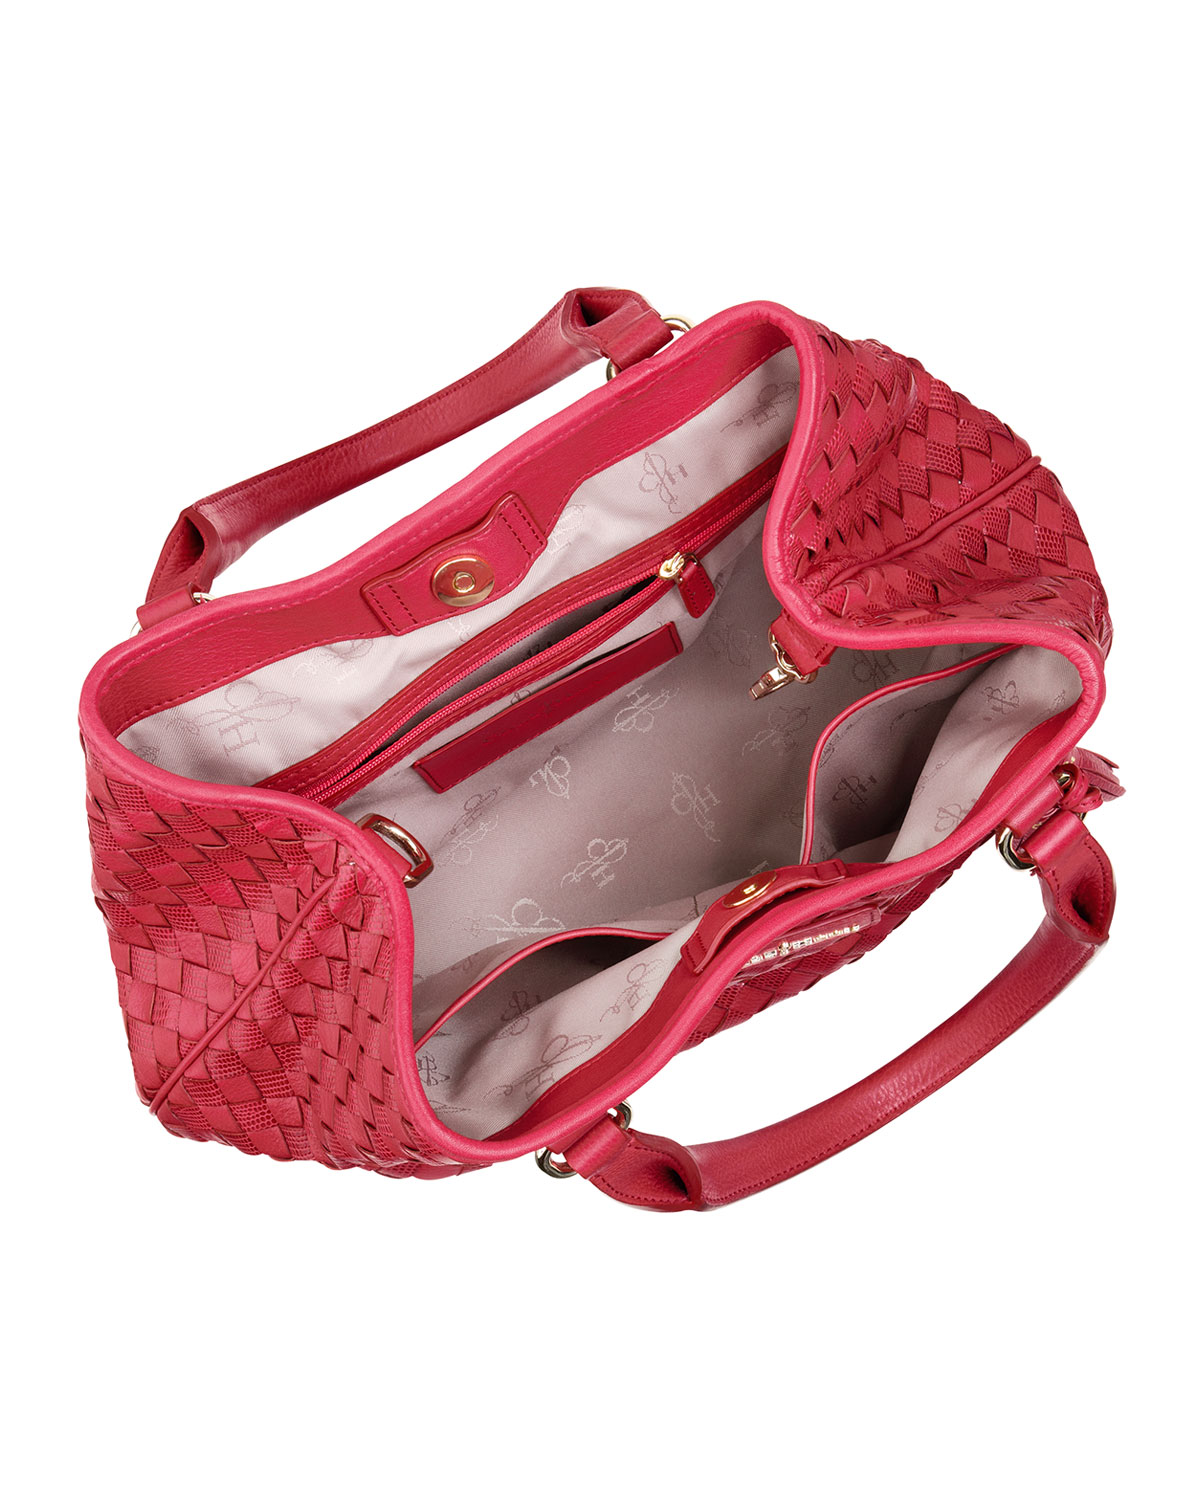 98148f0d7f Cole Haan Nora Woven Serena Tote Bag Red in Red - Lyst